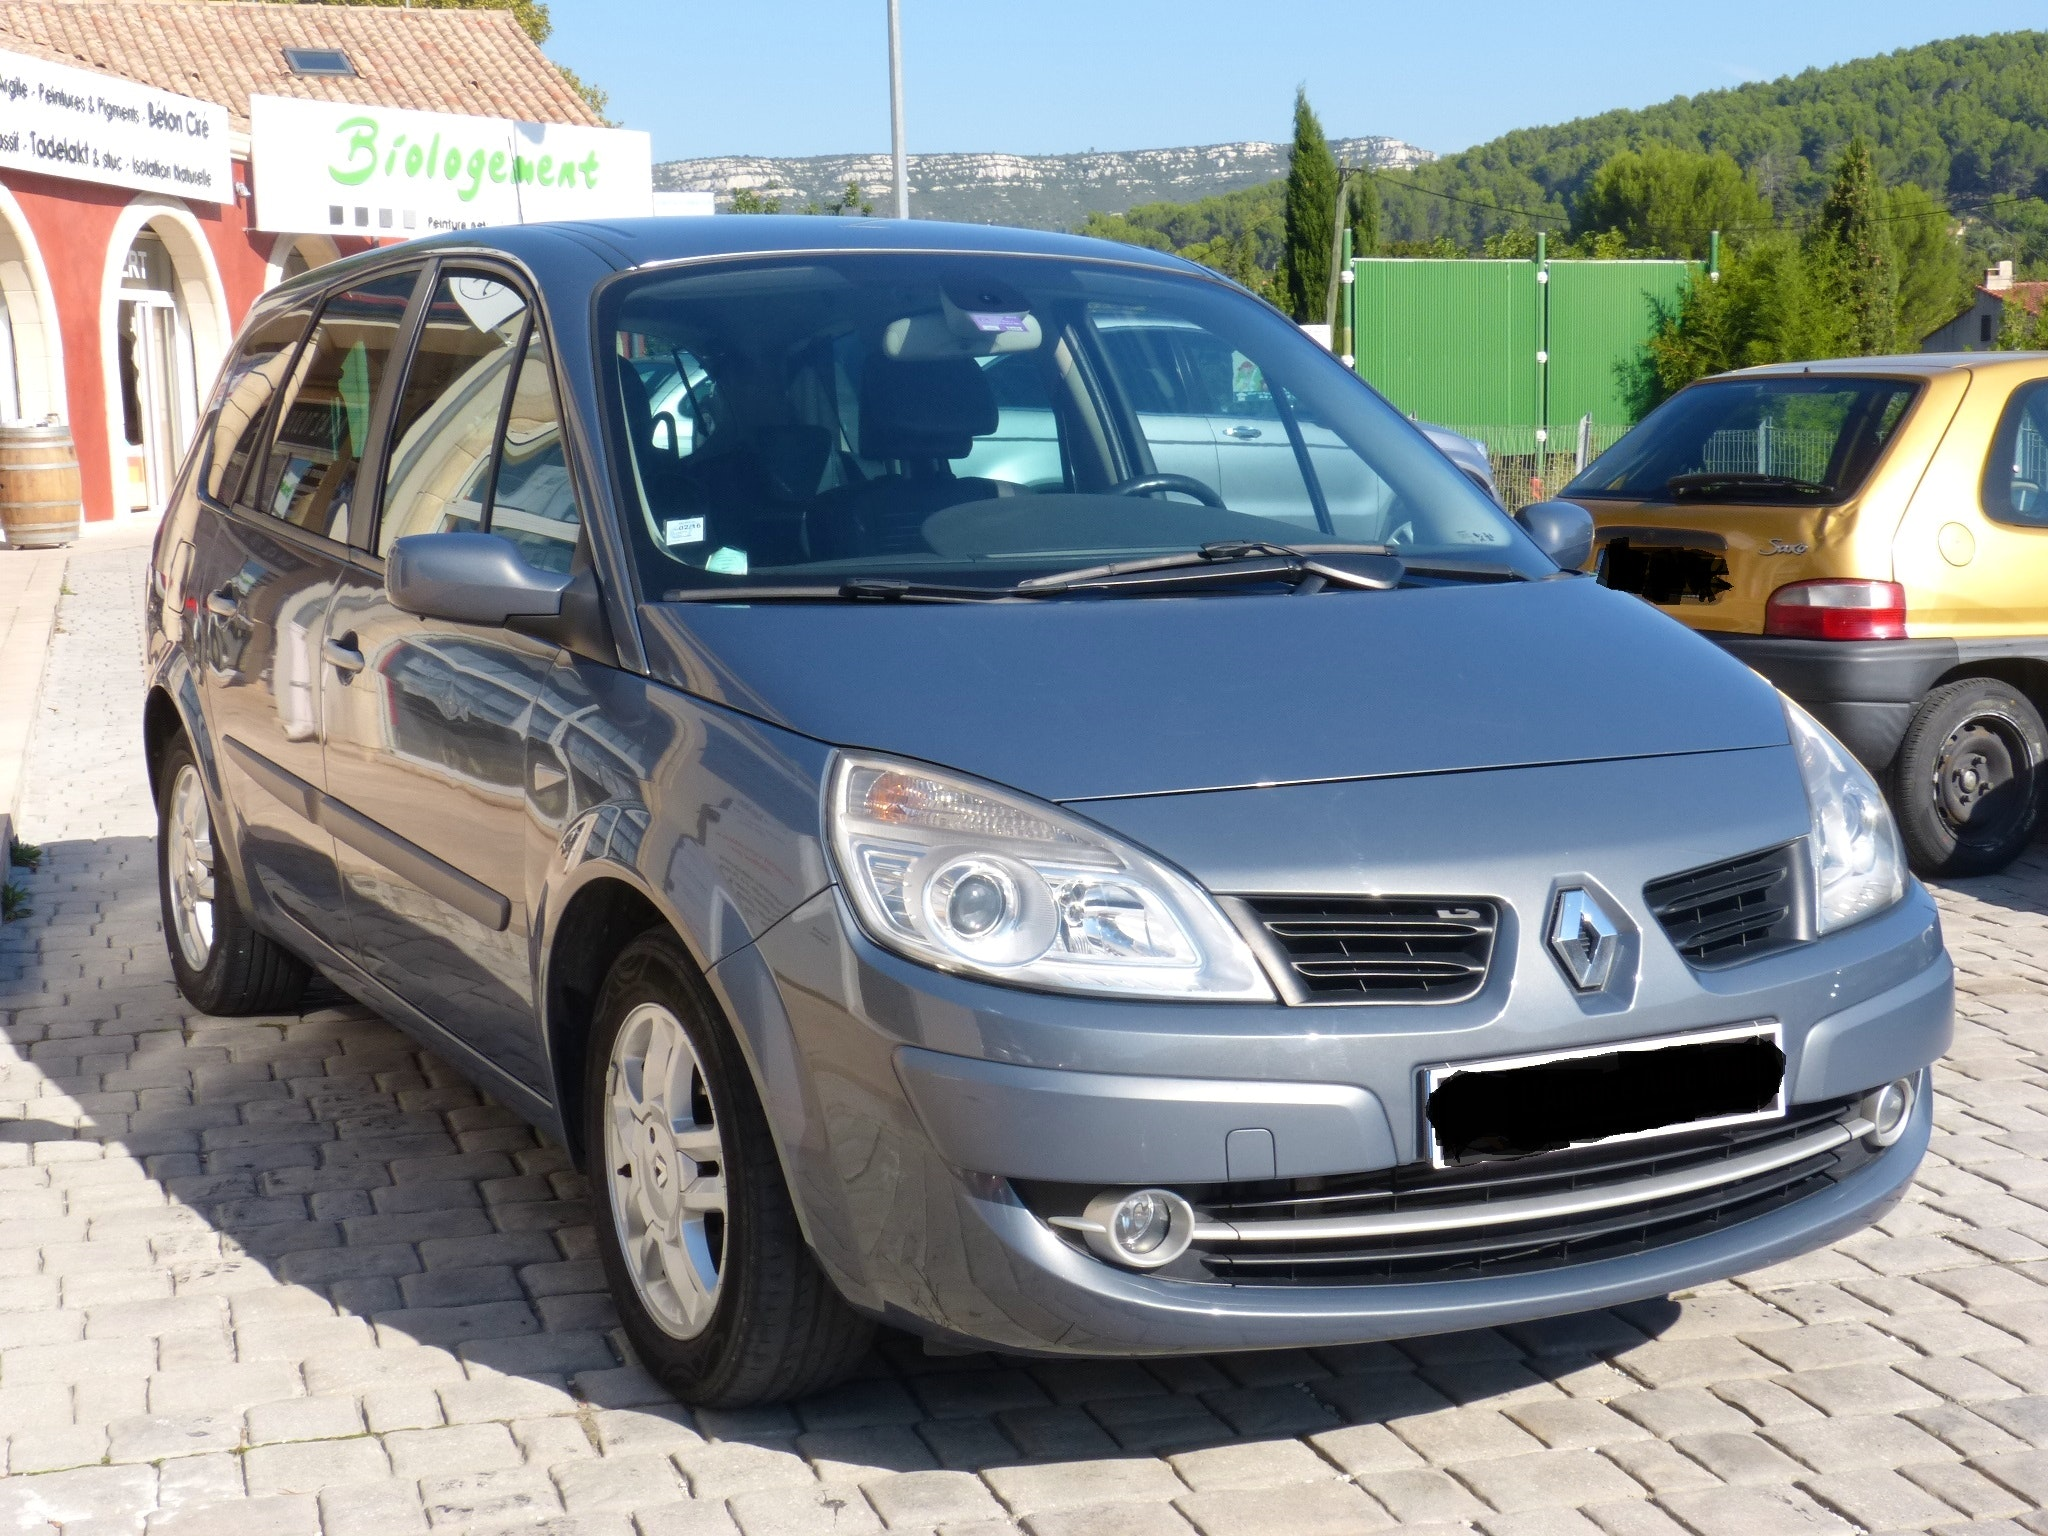 Renault Grand Scénic 2 1.9 DCI 130 EXCEPTION, 2007, Diesel, 7 places